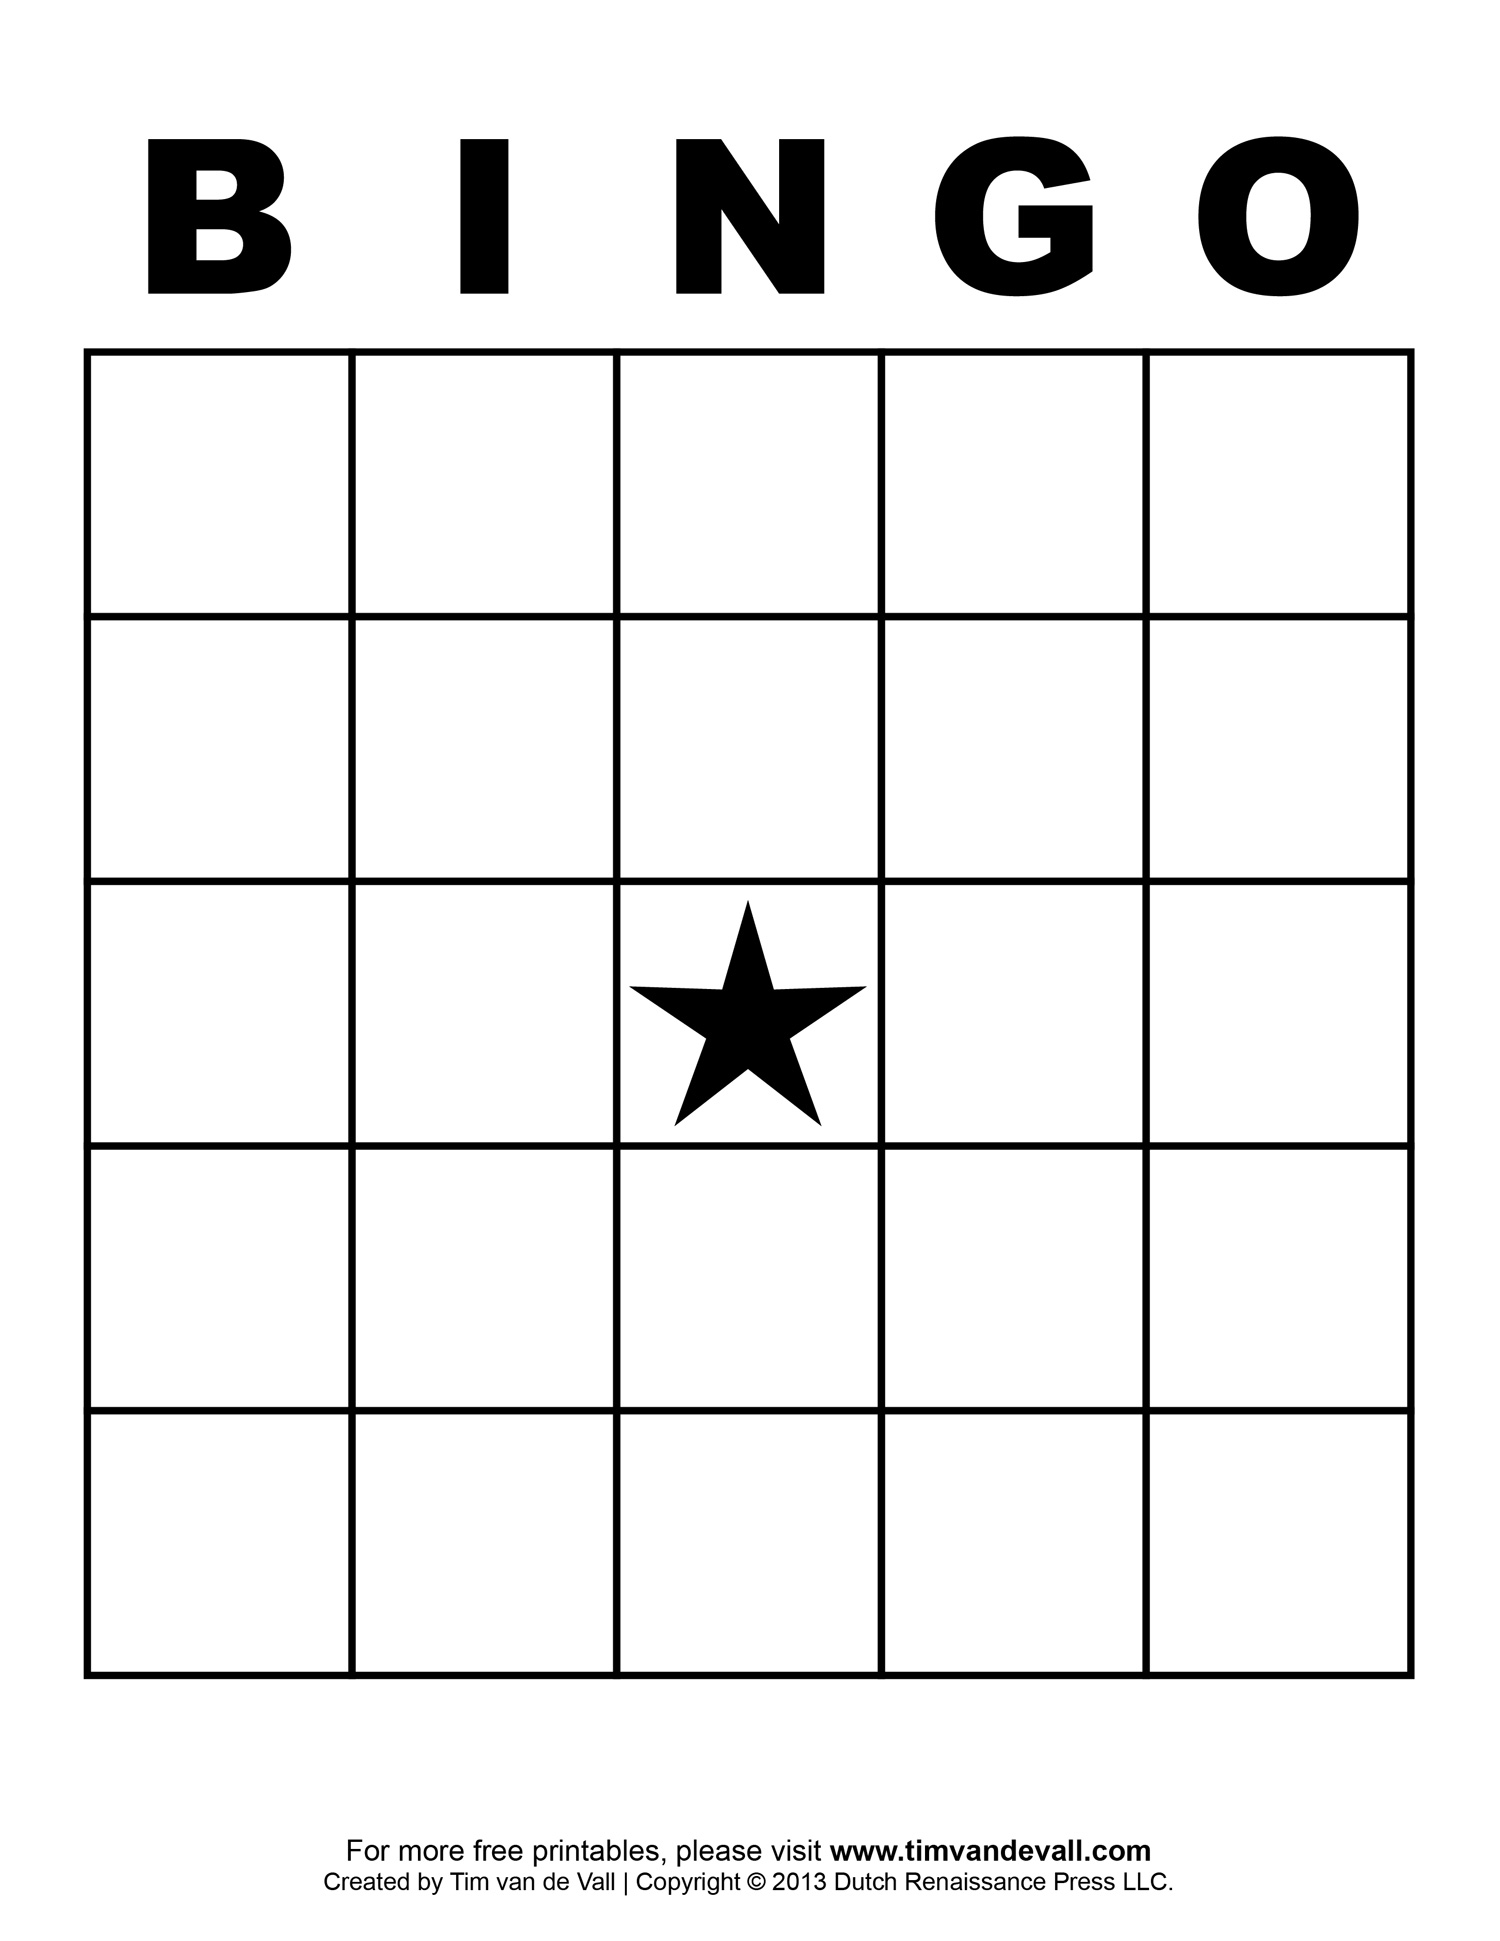 5x5 bingo grid with central star